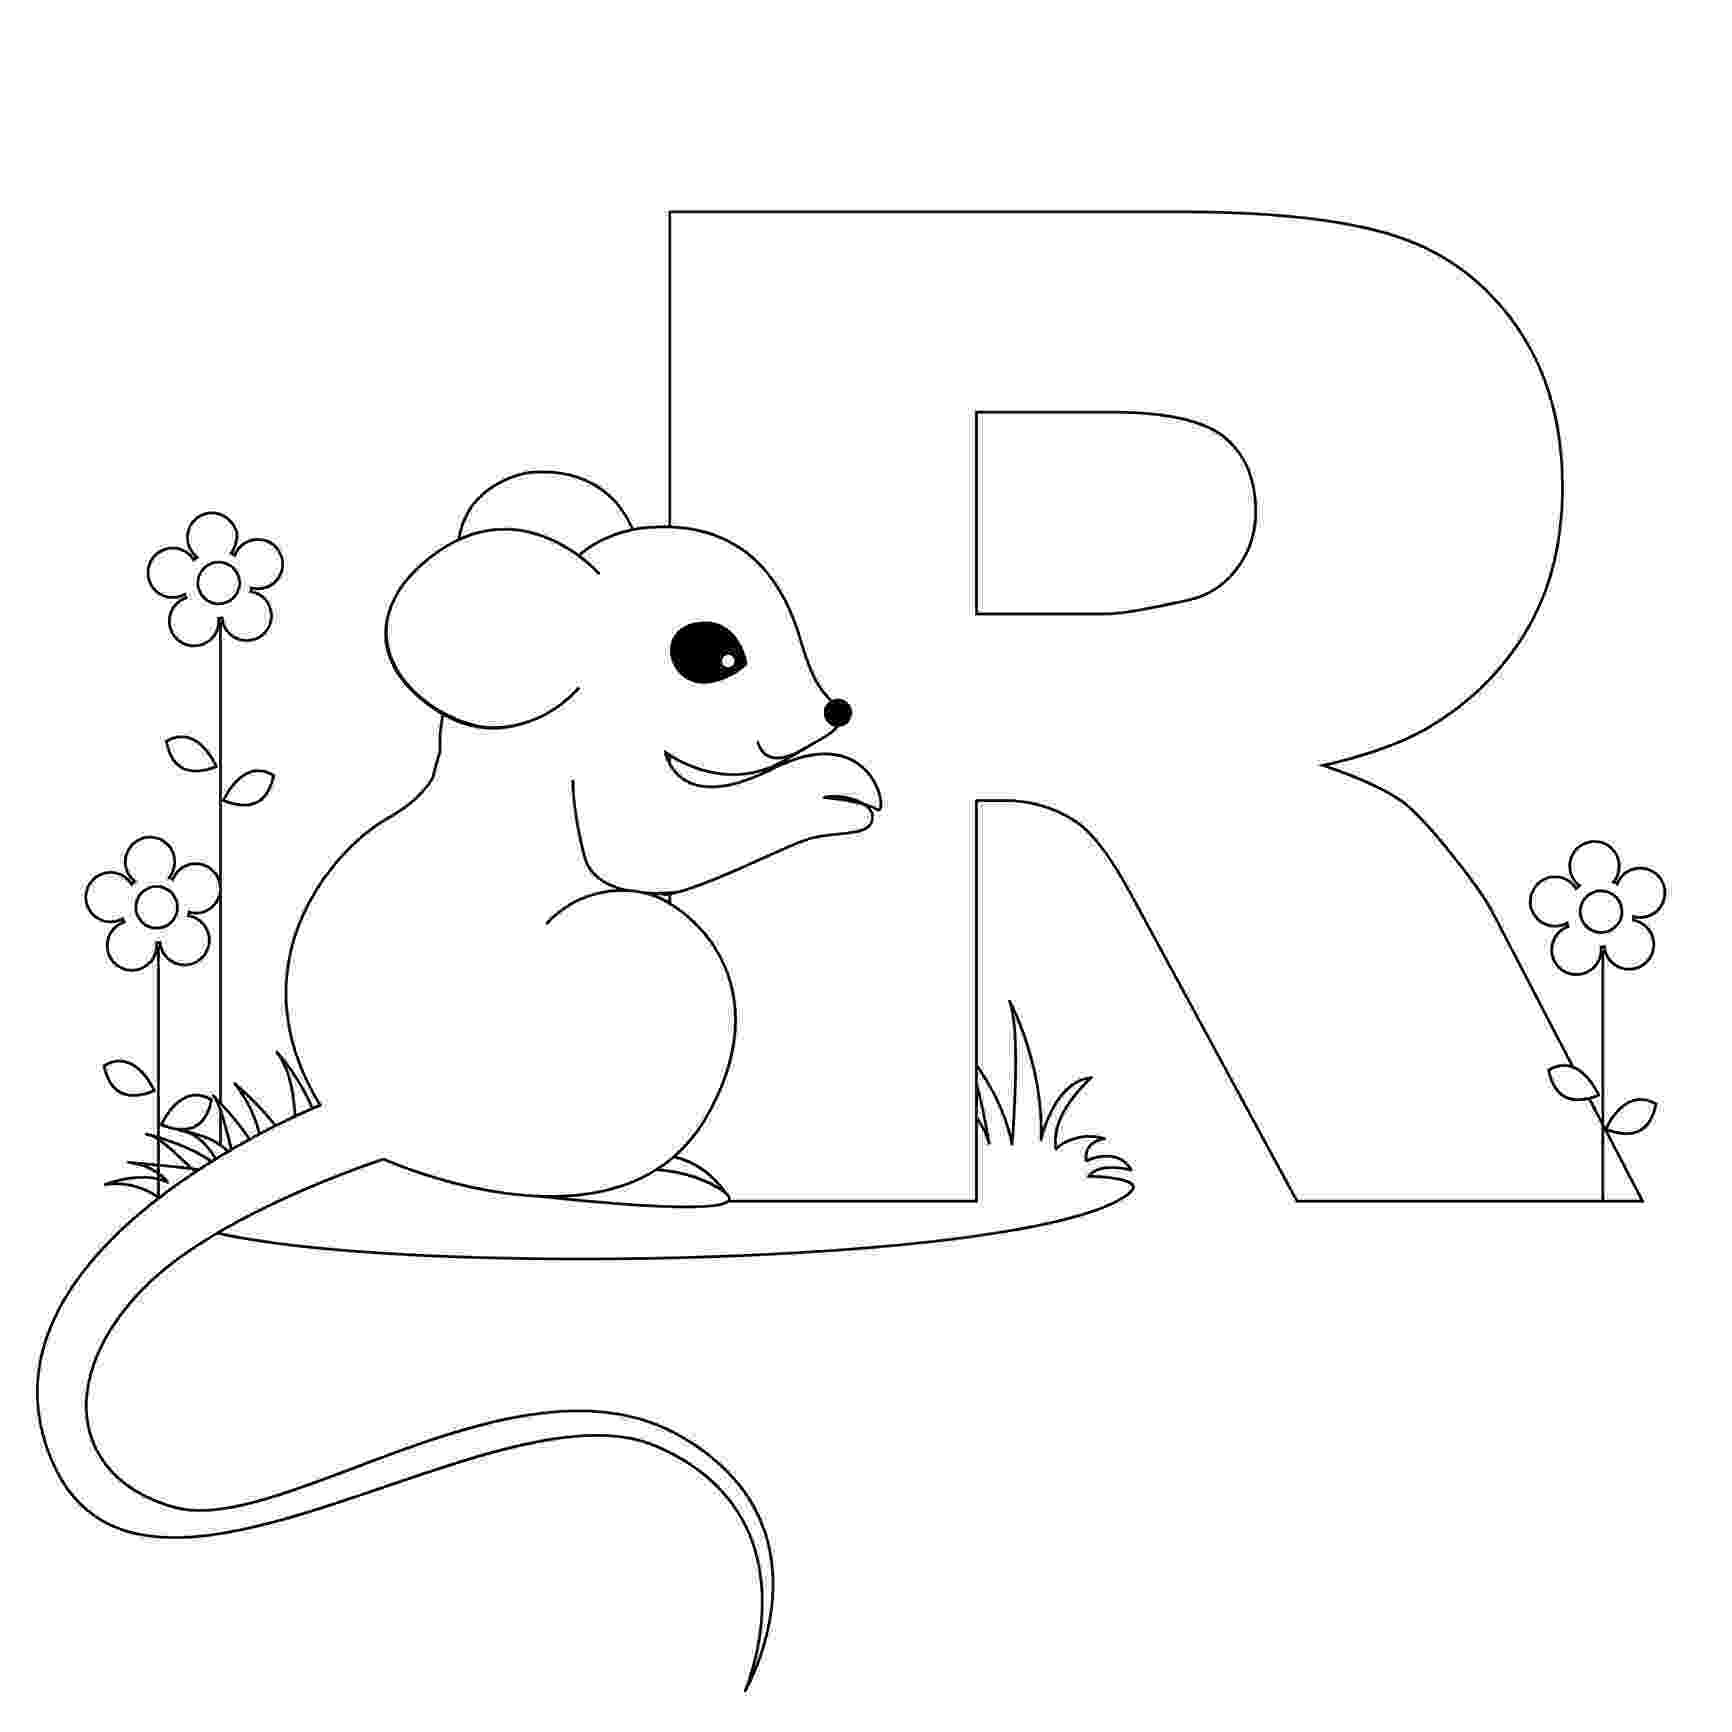 free alphabet coloring pages free printable alphabet coloring pages for kids best free coloring pages alphabet